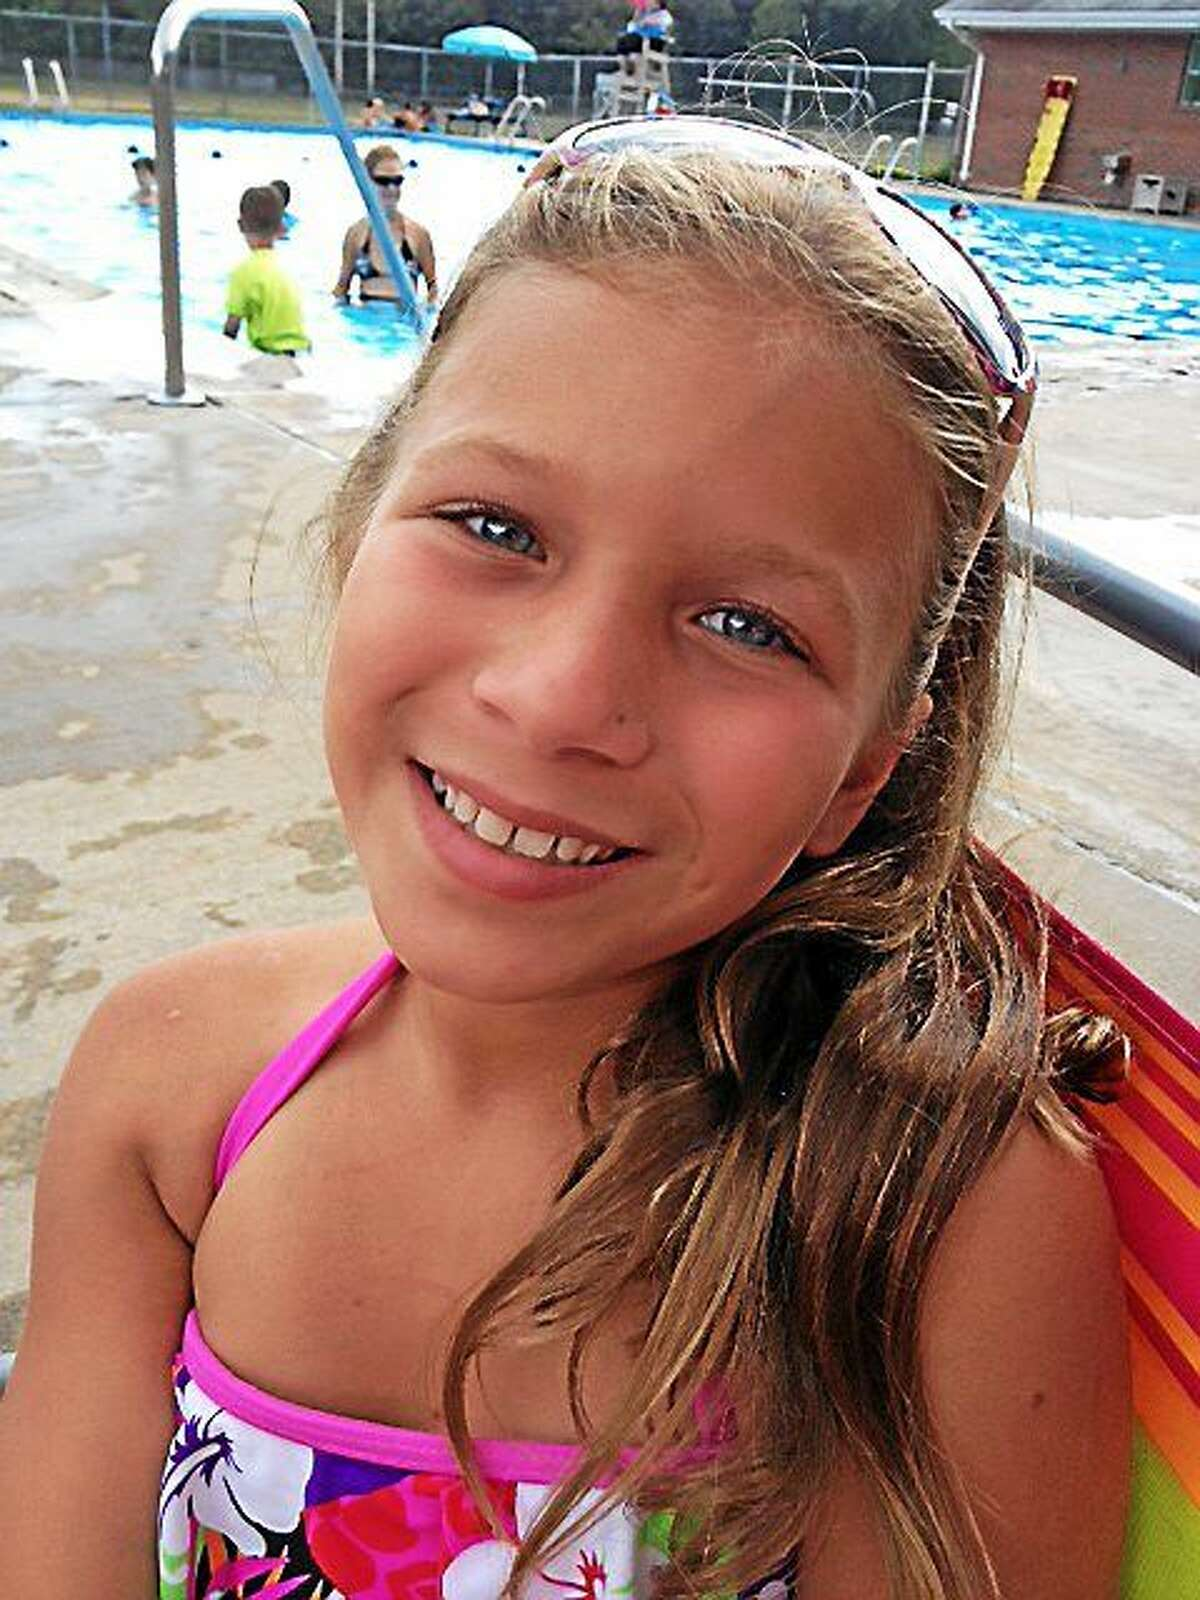 Aliana Fichera of Rocky Hill, 10, who suffers from common variable immunodeficiency, will become an official member of the Wesleyan University swim team during a special draft day event Saturday in Middletown.